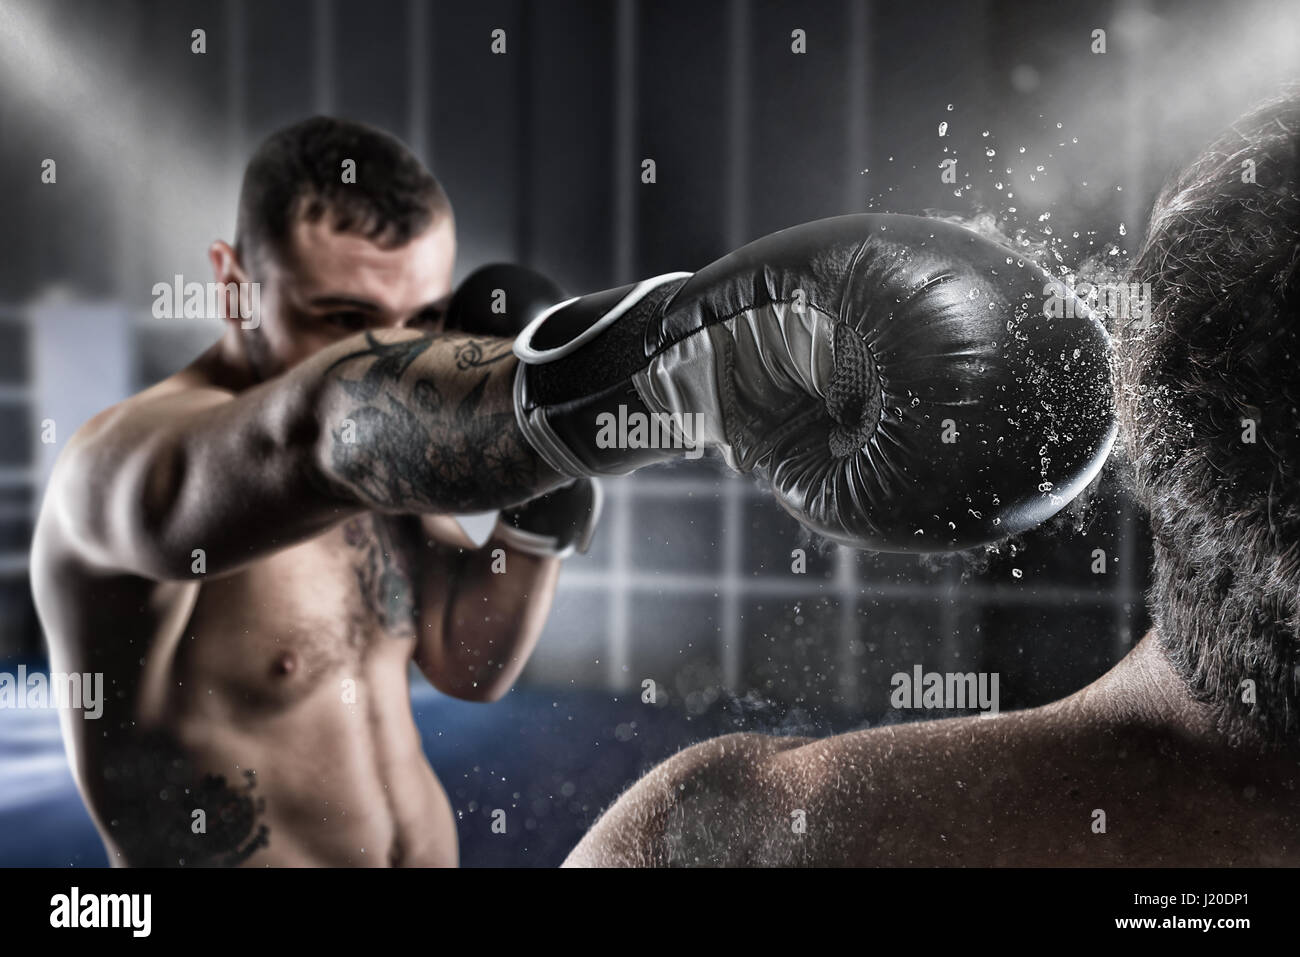 Boxer in a boxe competition beats his opponent - Stock Image